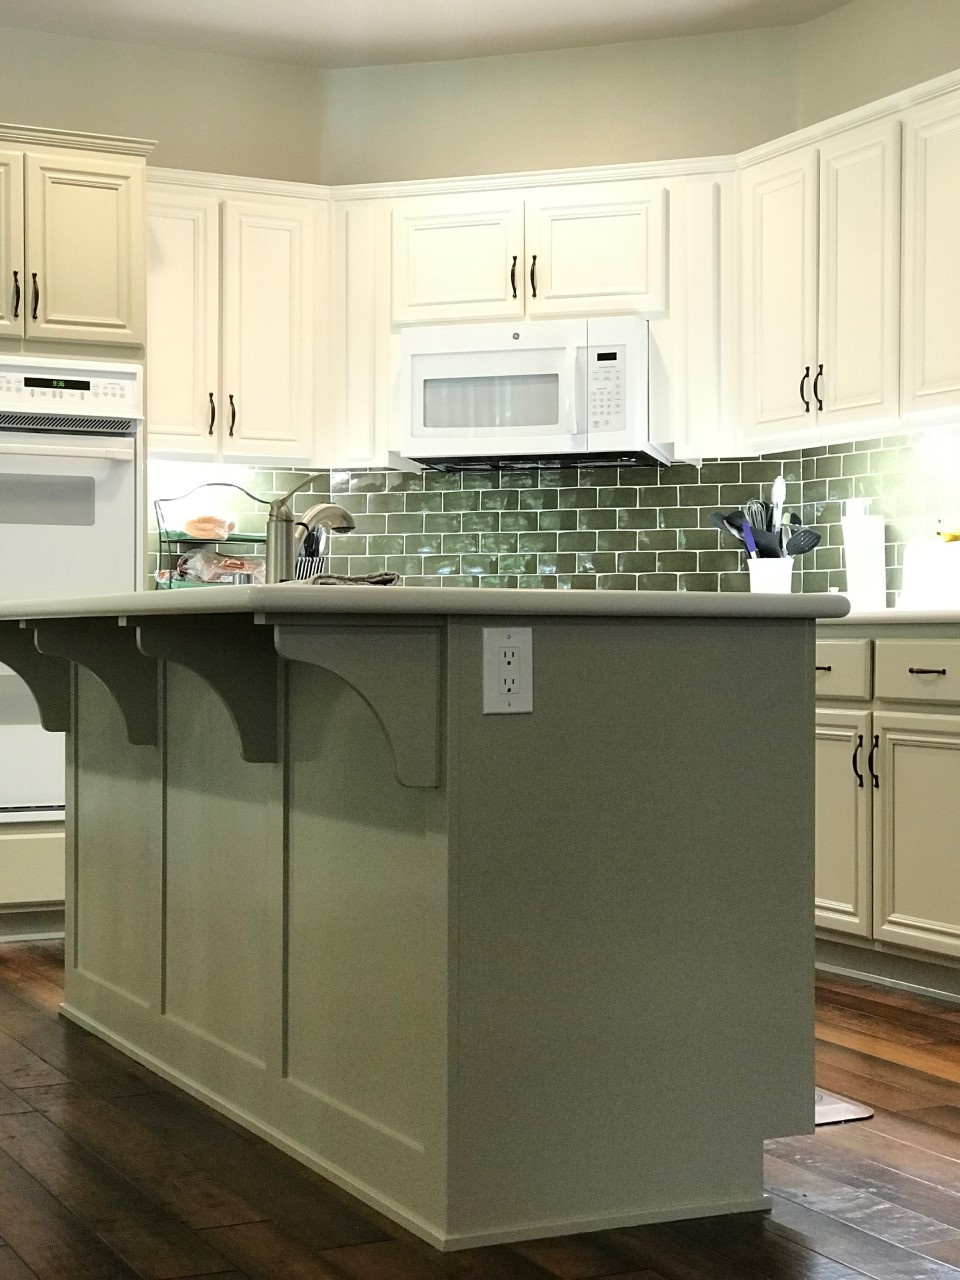 Profitable Painting services company